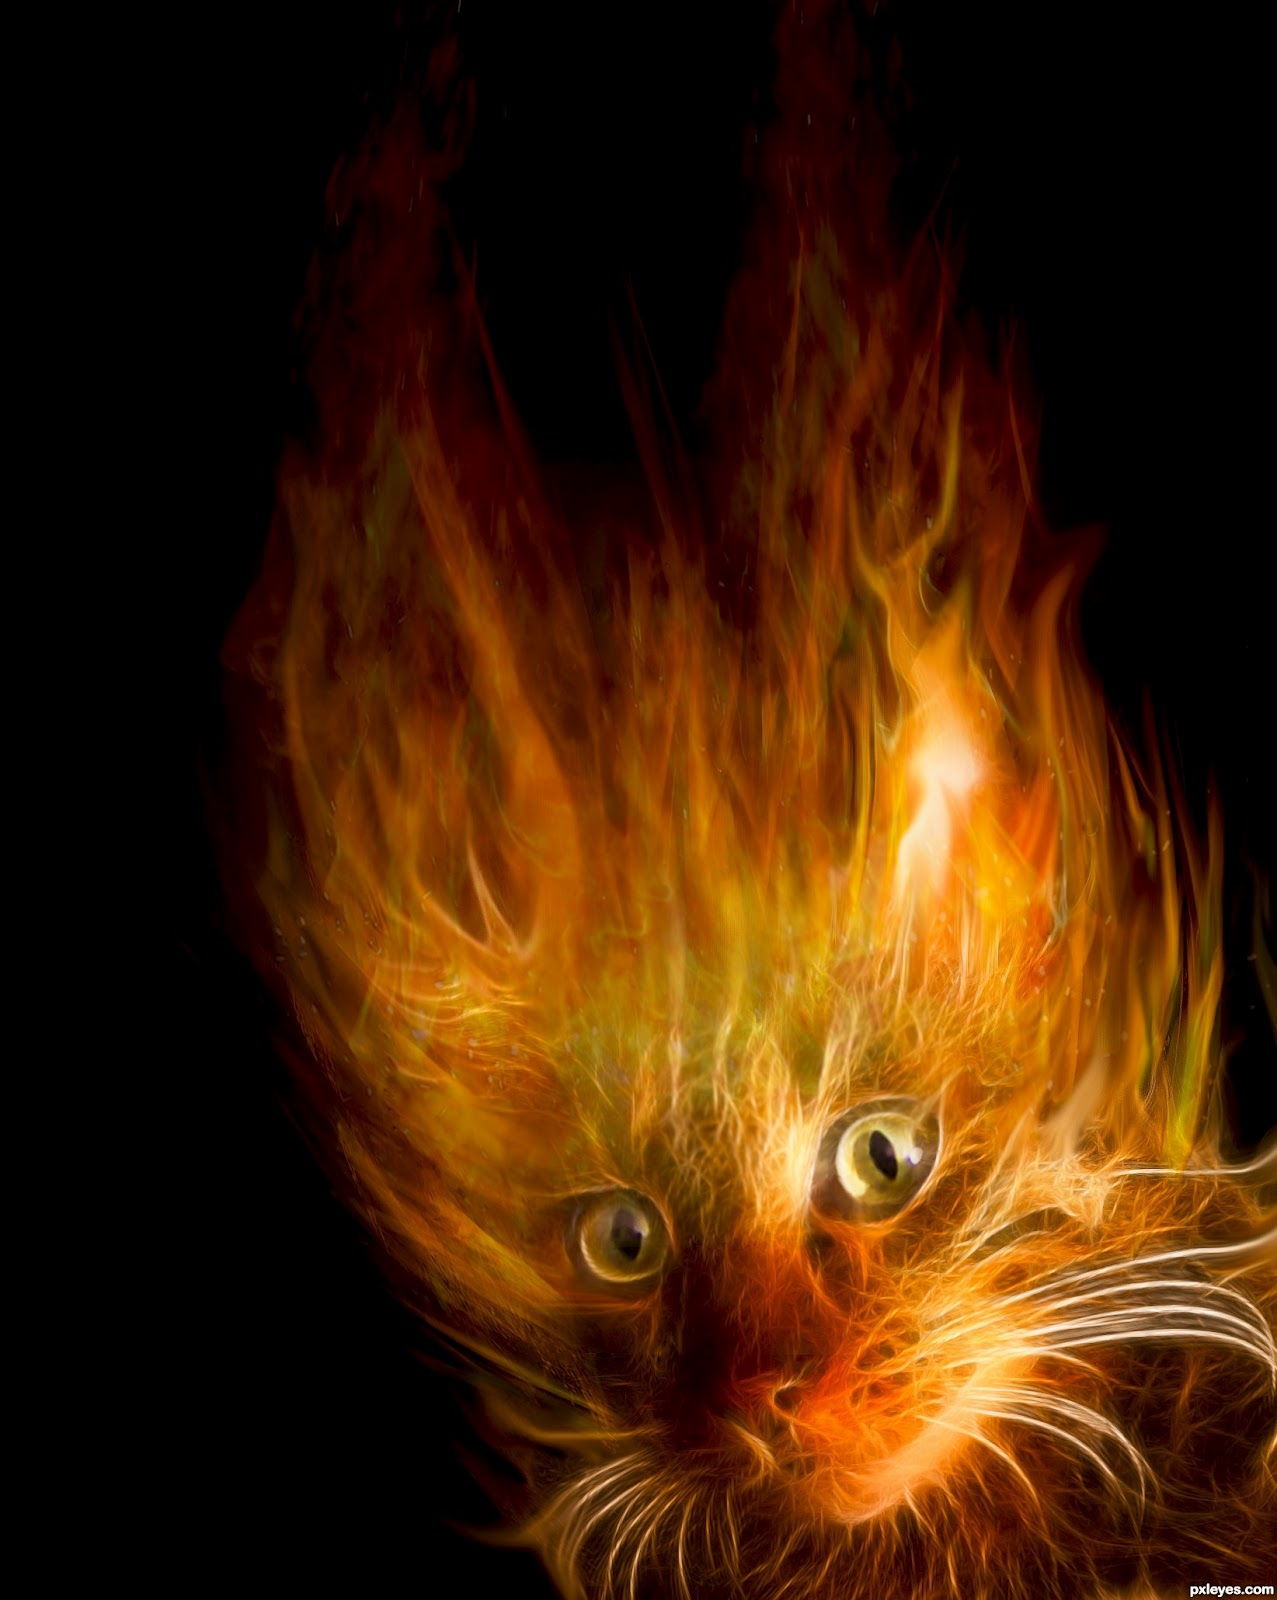 http://1.bp.blogspot.com/-npDrAfVKBUY/T3l0RKUooNI/AAAAAAAABG8/hMb59Ks6Y14/s1600/cat-fire-wallpaper-desktop-wallpaper-fire.jpg